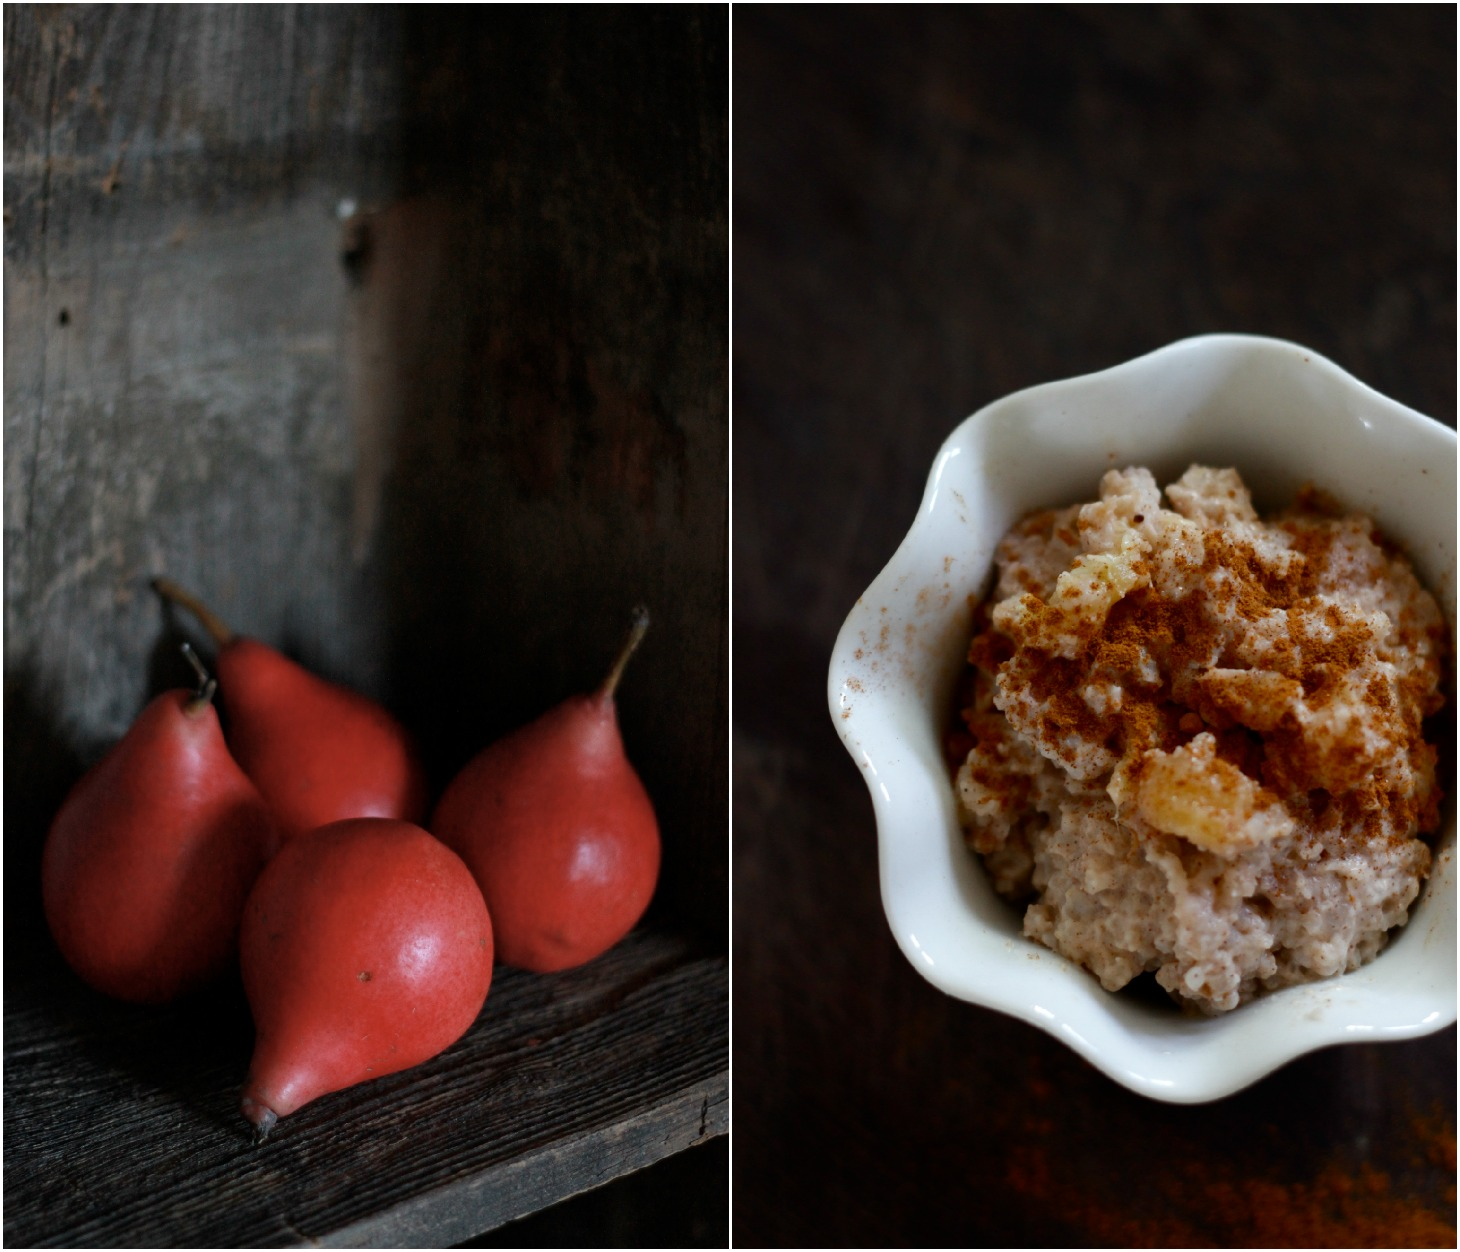 Caramelized Pear and Coconut Rice Pudding {Dairy Free, Gluten Free, Vegetarian, Vegan}